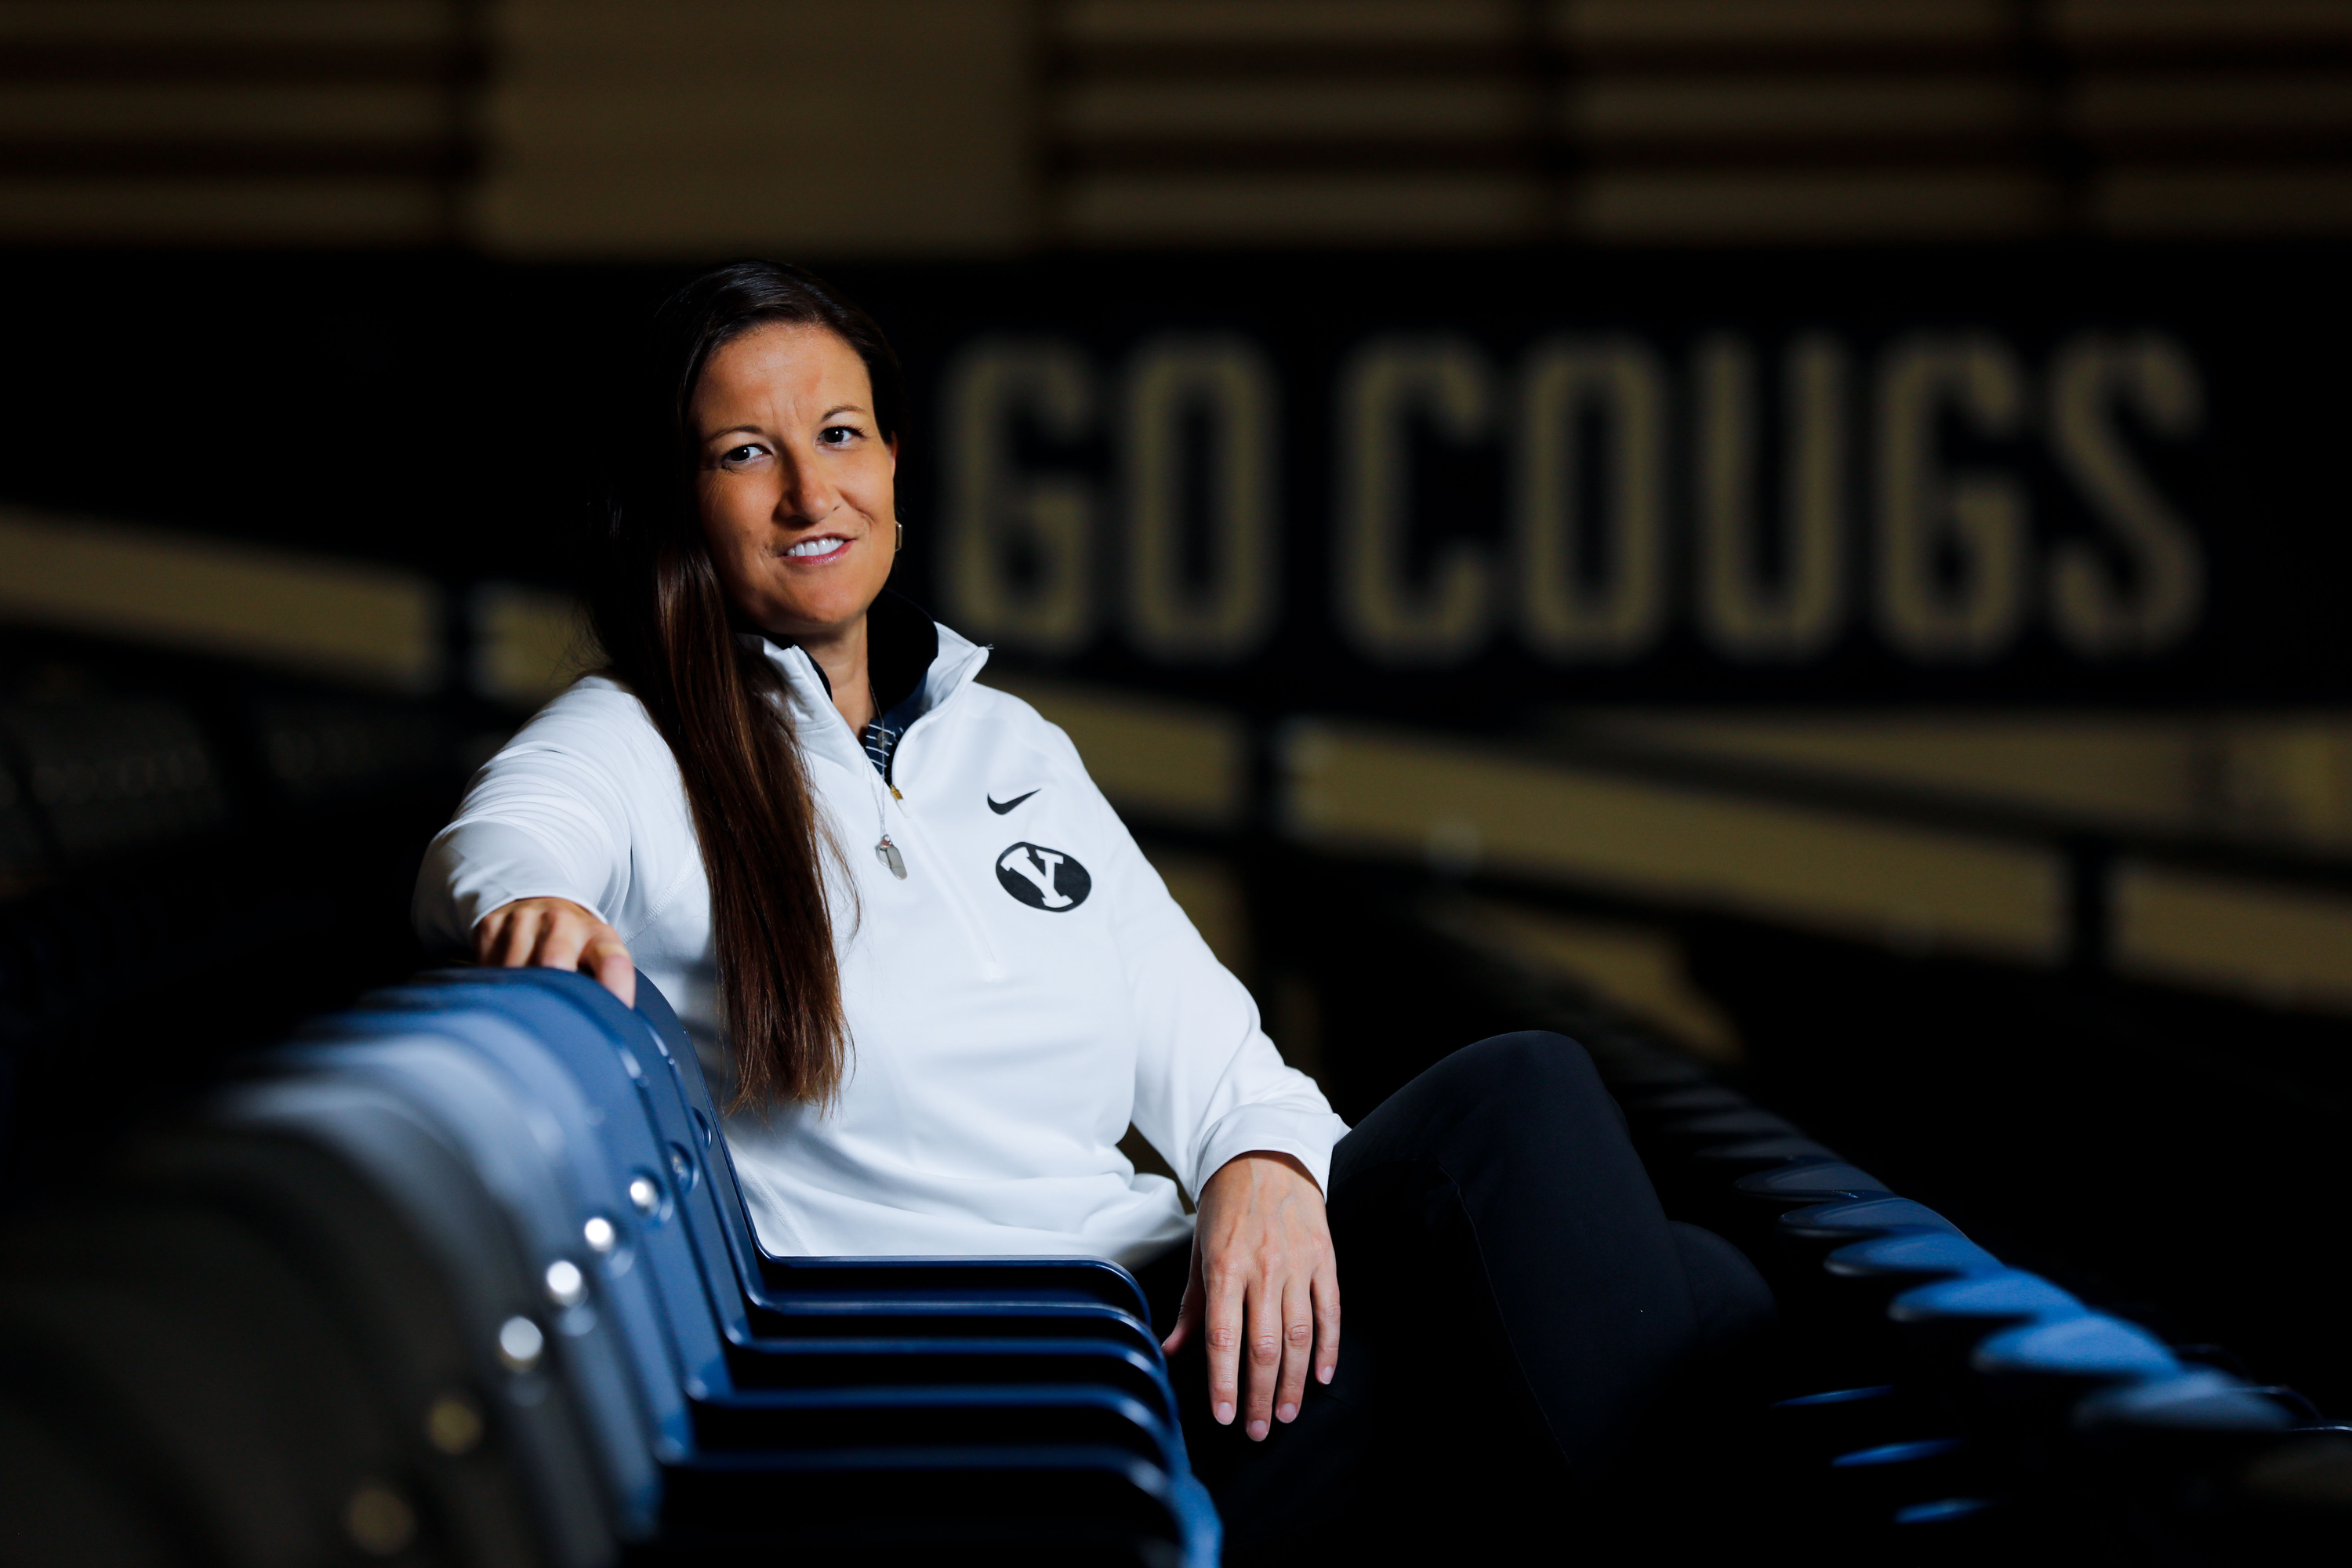 Liz Darger poses for a portrait at the Student Athlete Building in Provo on Monday, Sept. 27, 2021.